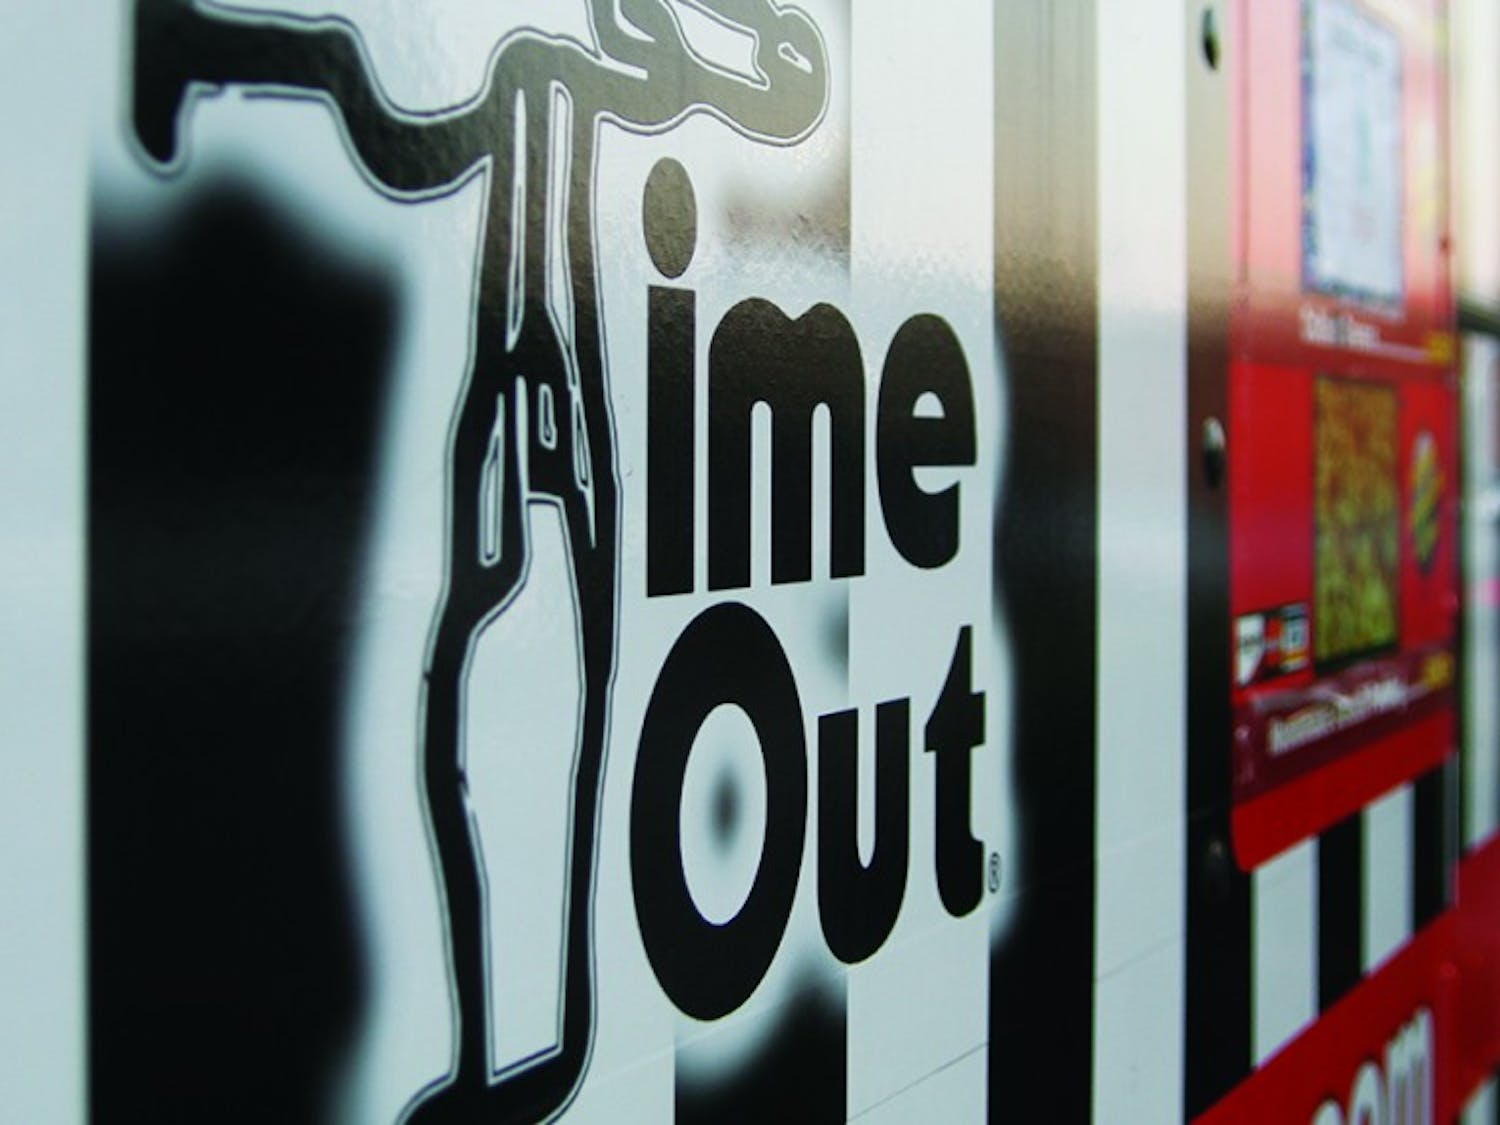 Time Out now has a food truck that travels between the two restaurant locations.